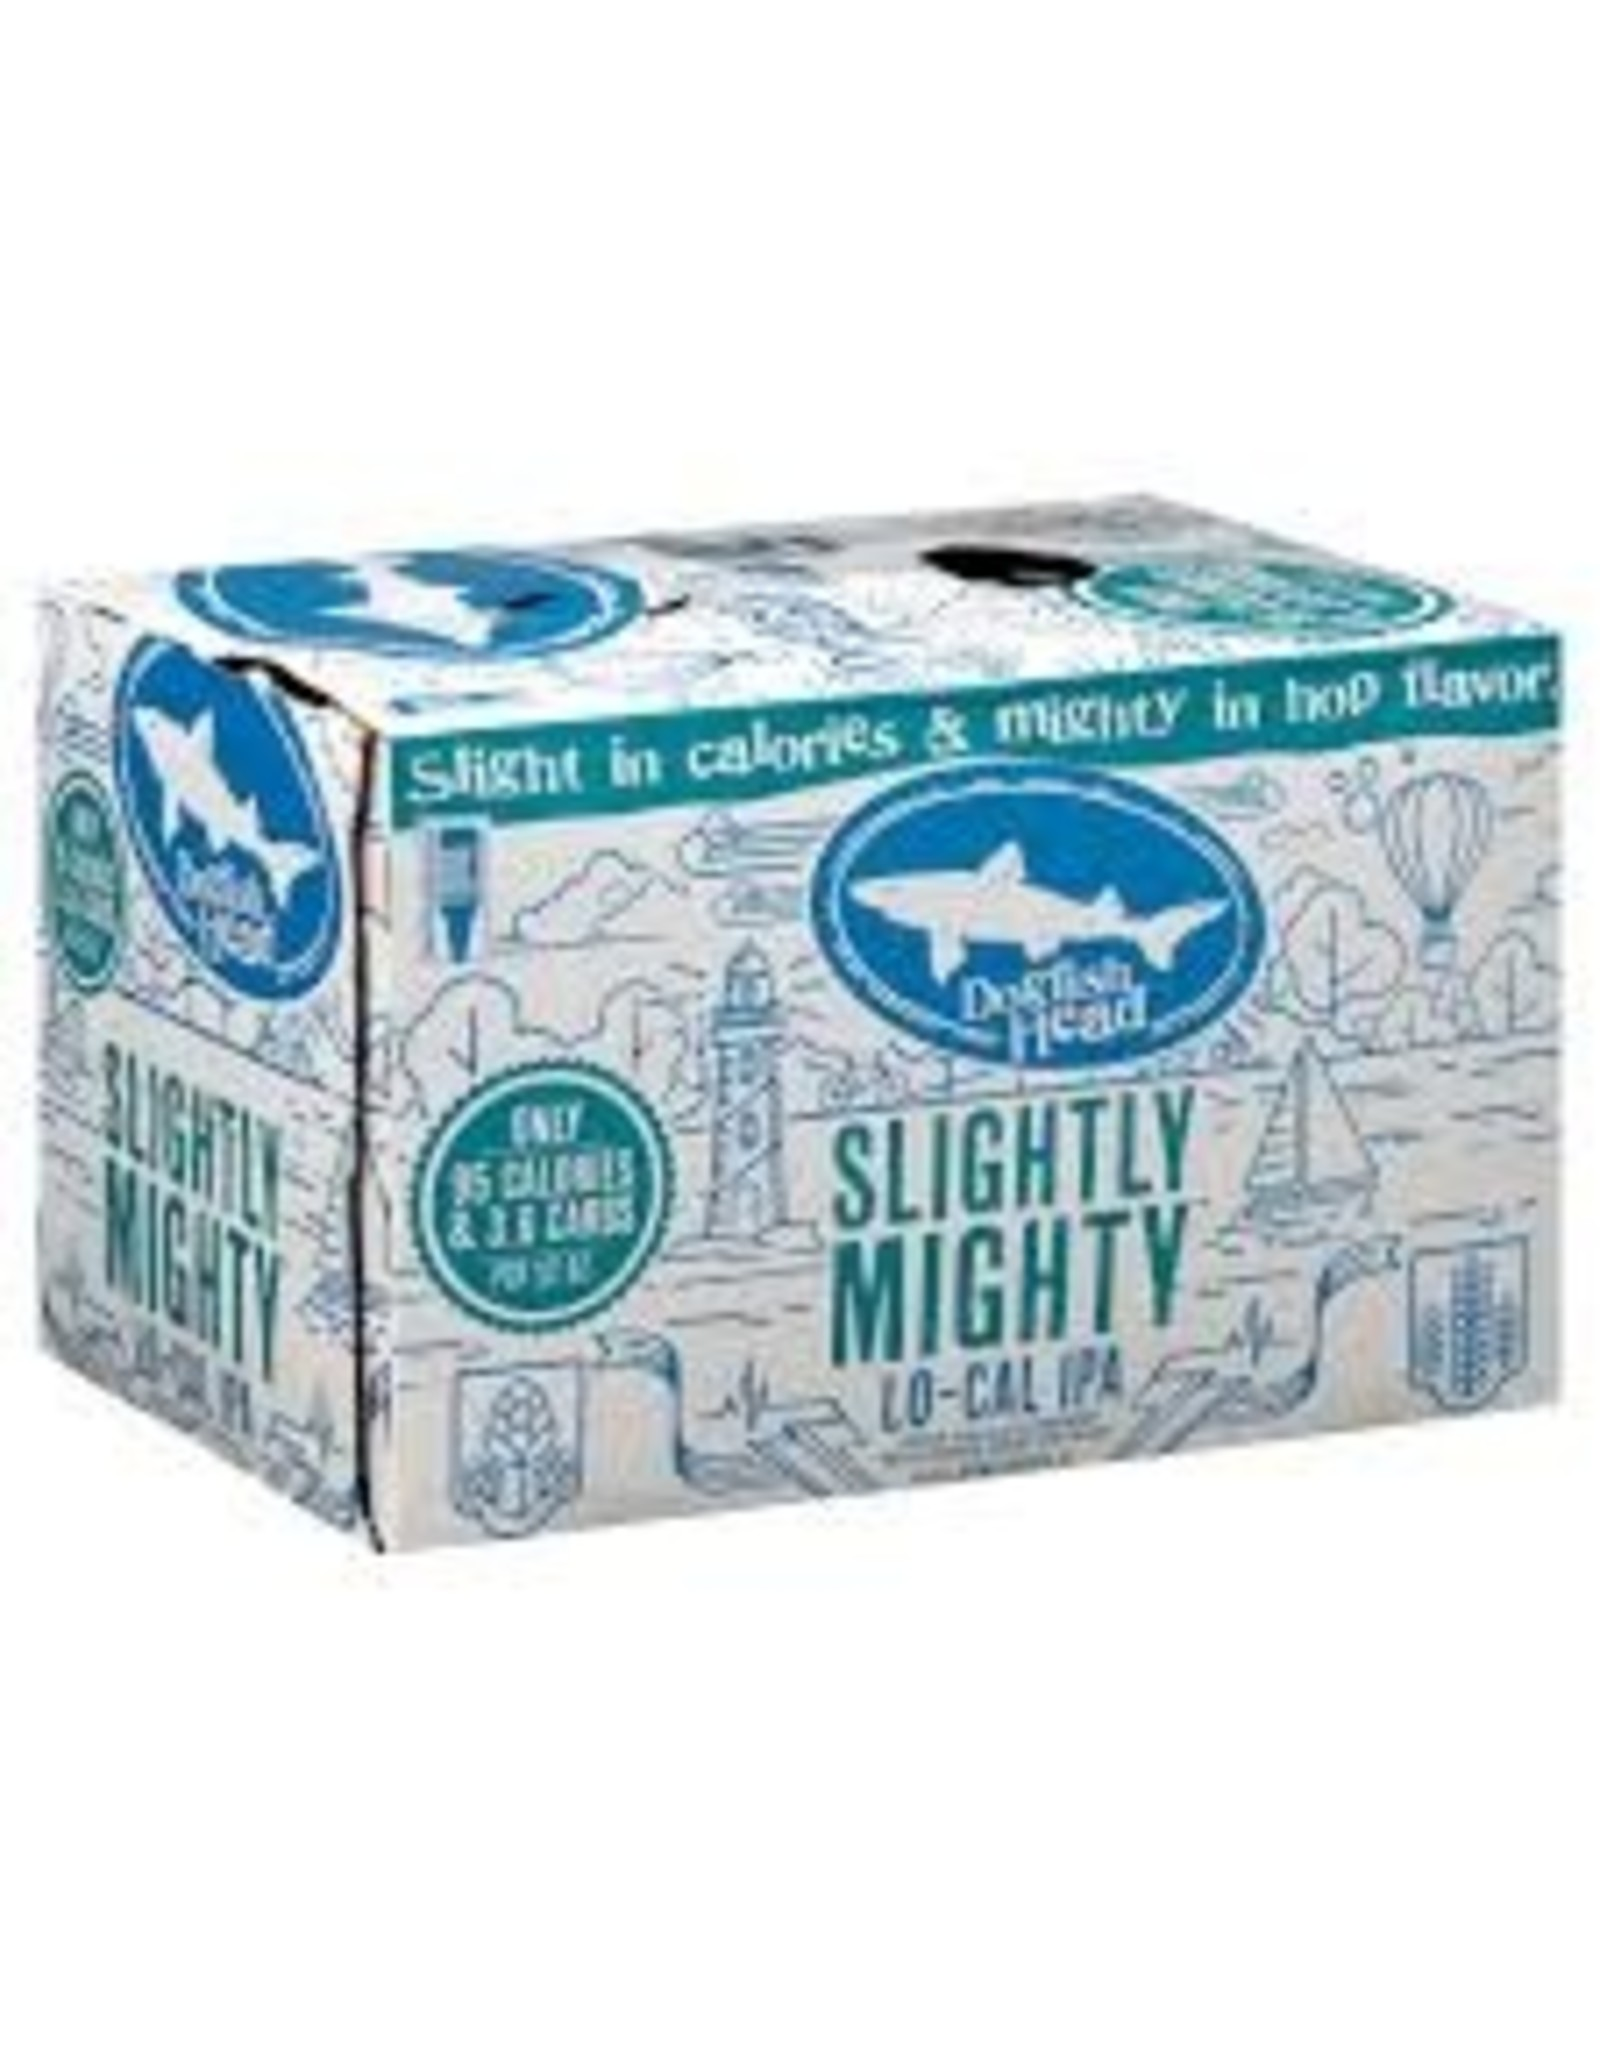 Dogfish Head Dogfish Head Slightly Mighty 6pk can